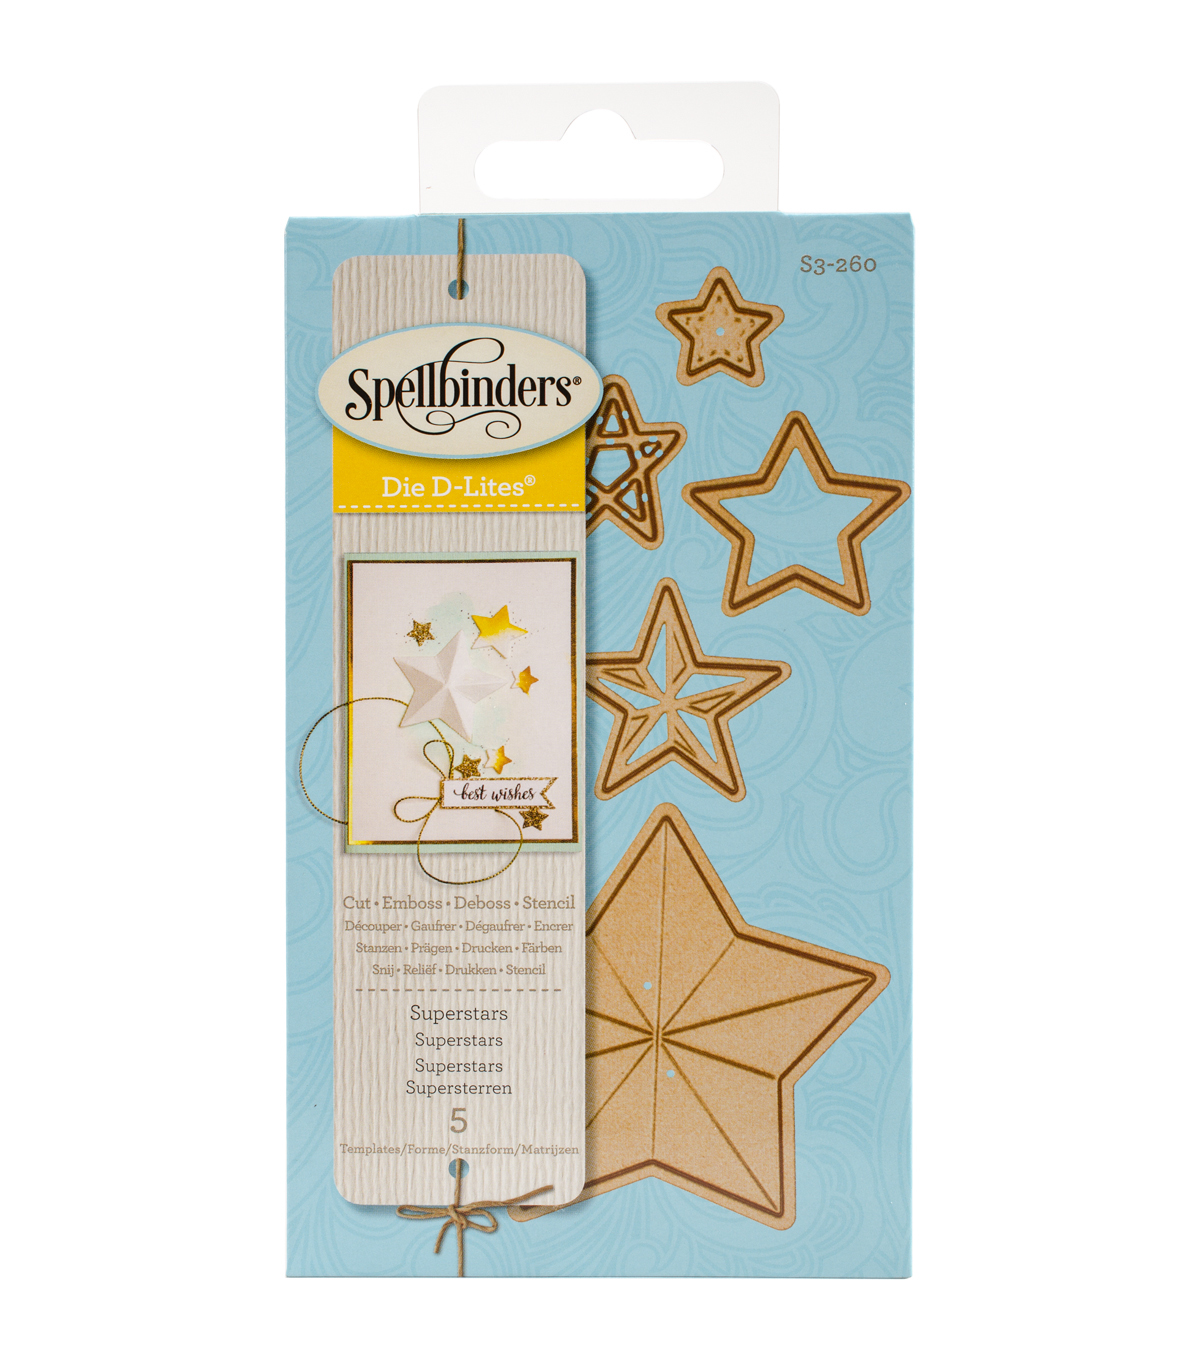 Spellbinders Die D-Lites 5 Pack Etched Dies-Superstars